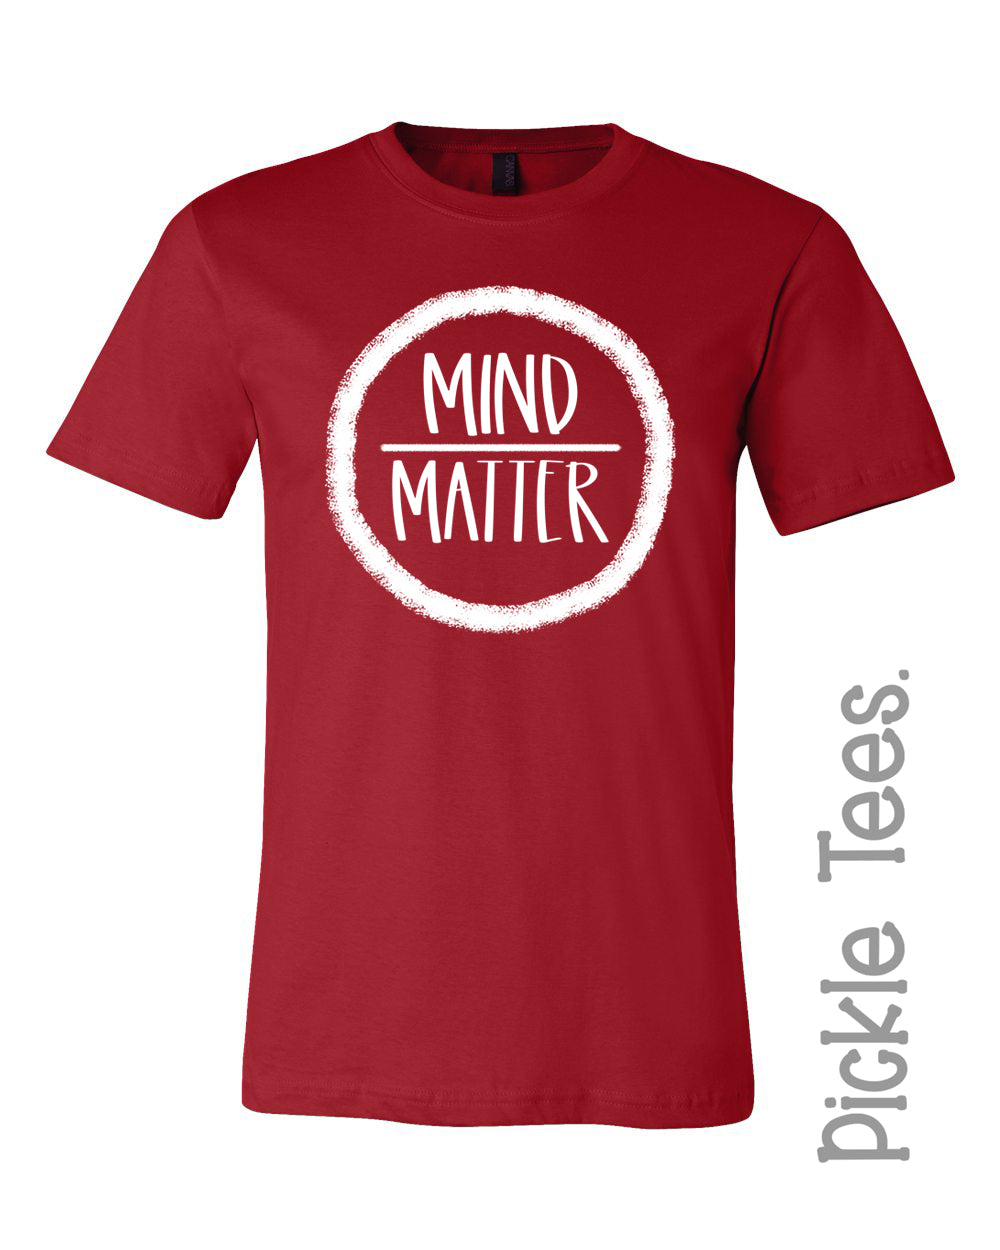 Mind Over Matter Crew Tee - Bless UR Heart Boutique